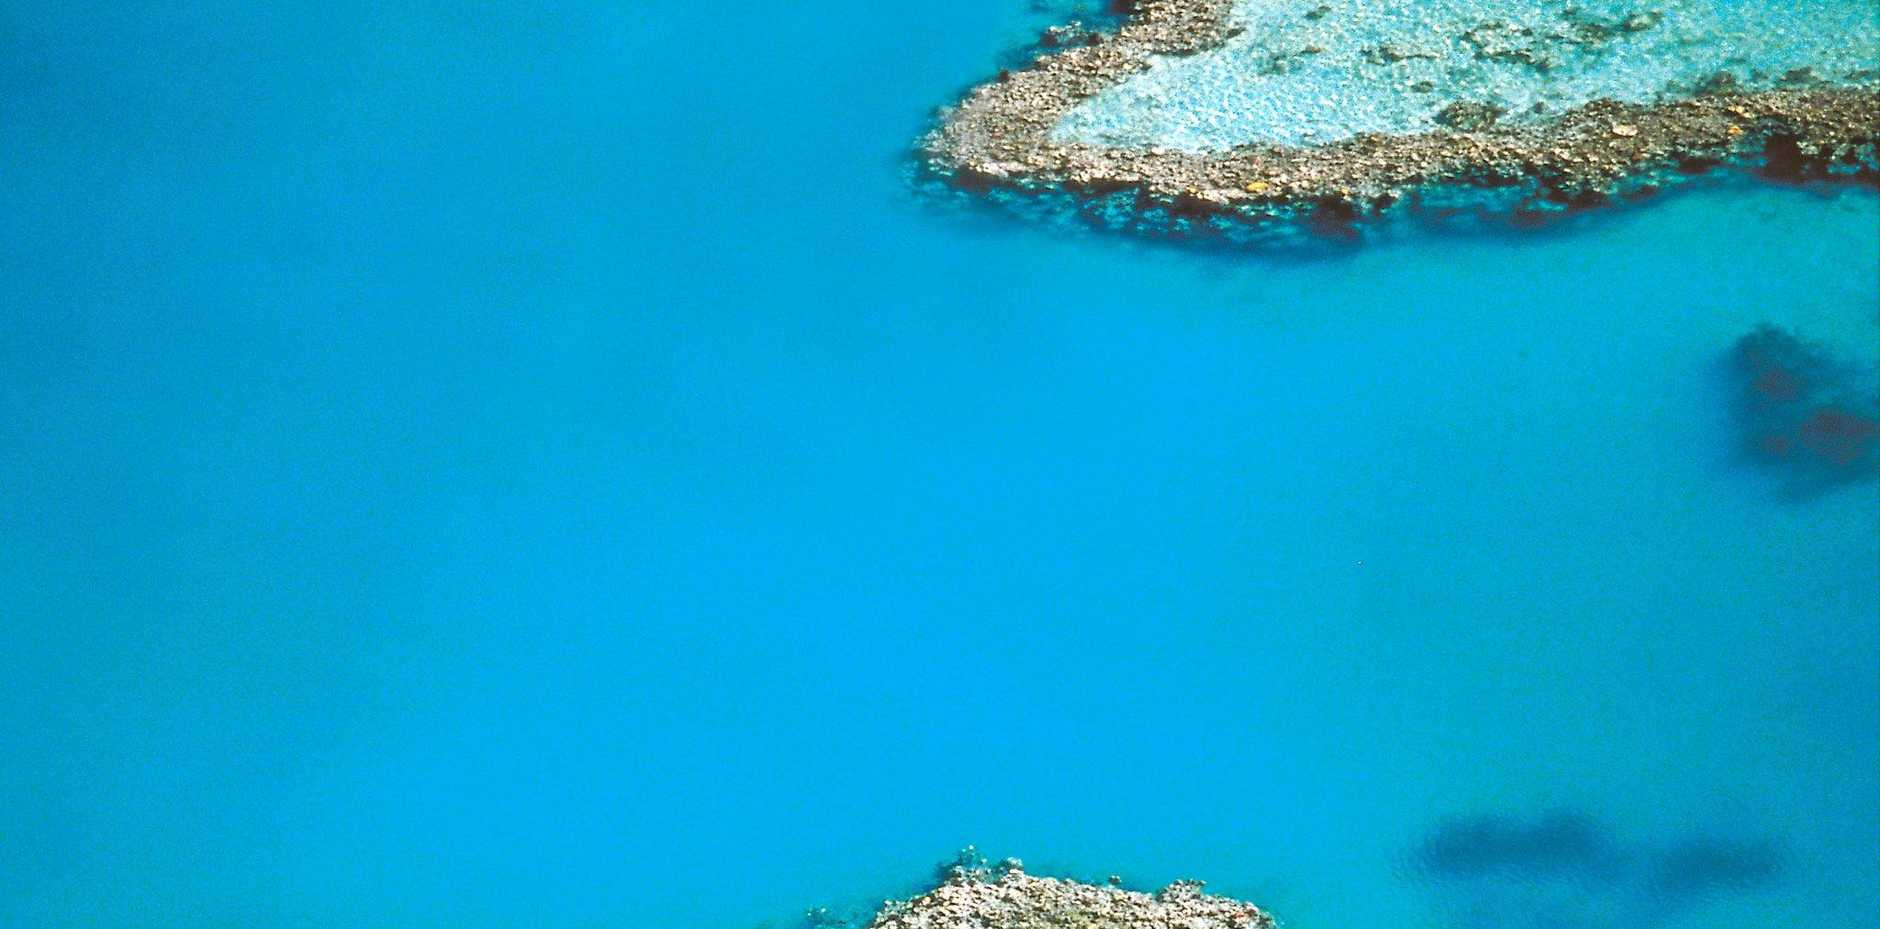 WHITSUNDAY VALENTINES: Celebrate this Valentines Day in the heart of the Great Barrier Reef. CONDITIONS OF USE NOT KNOWN, FEES MAY APPLY